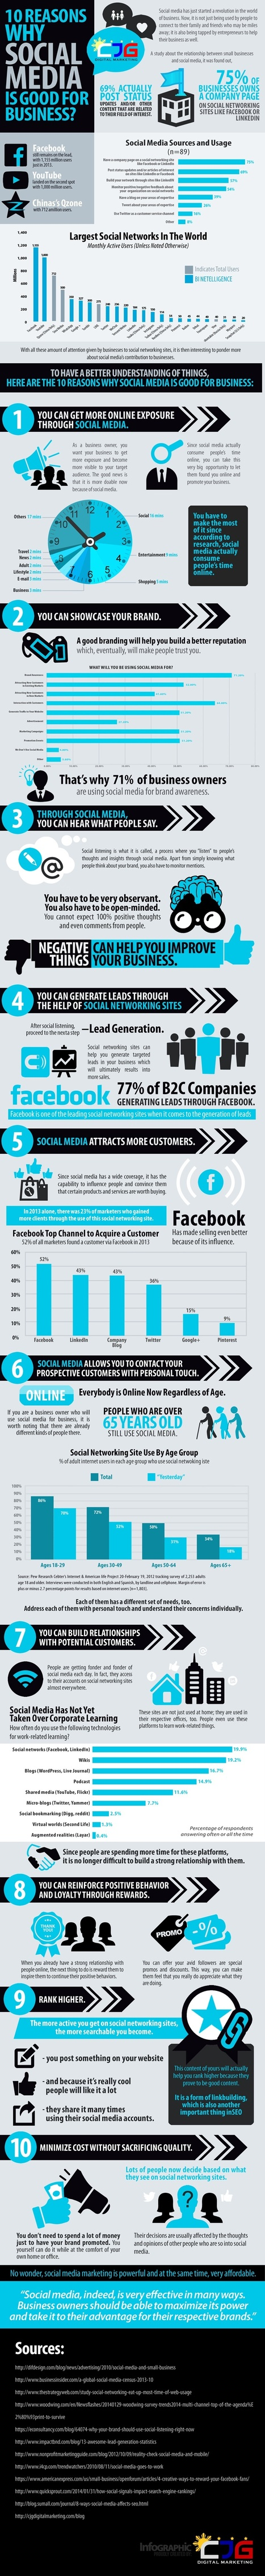 10 Reasons Why Social Media is Good for Business [INFOGRAPHIC] | MarketingHits | Scoop.it